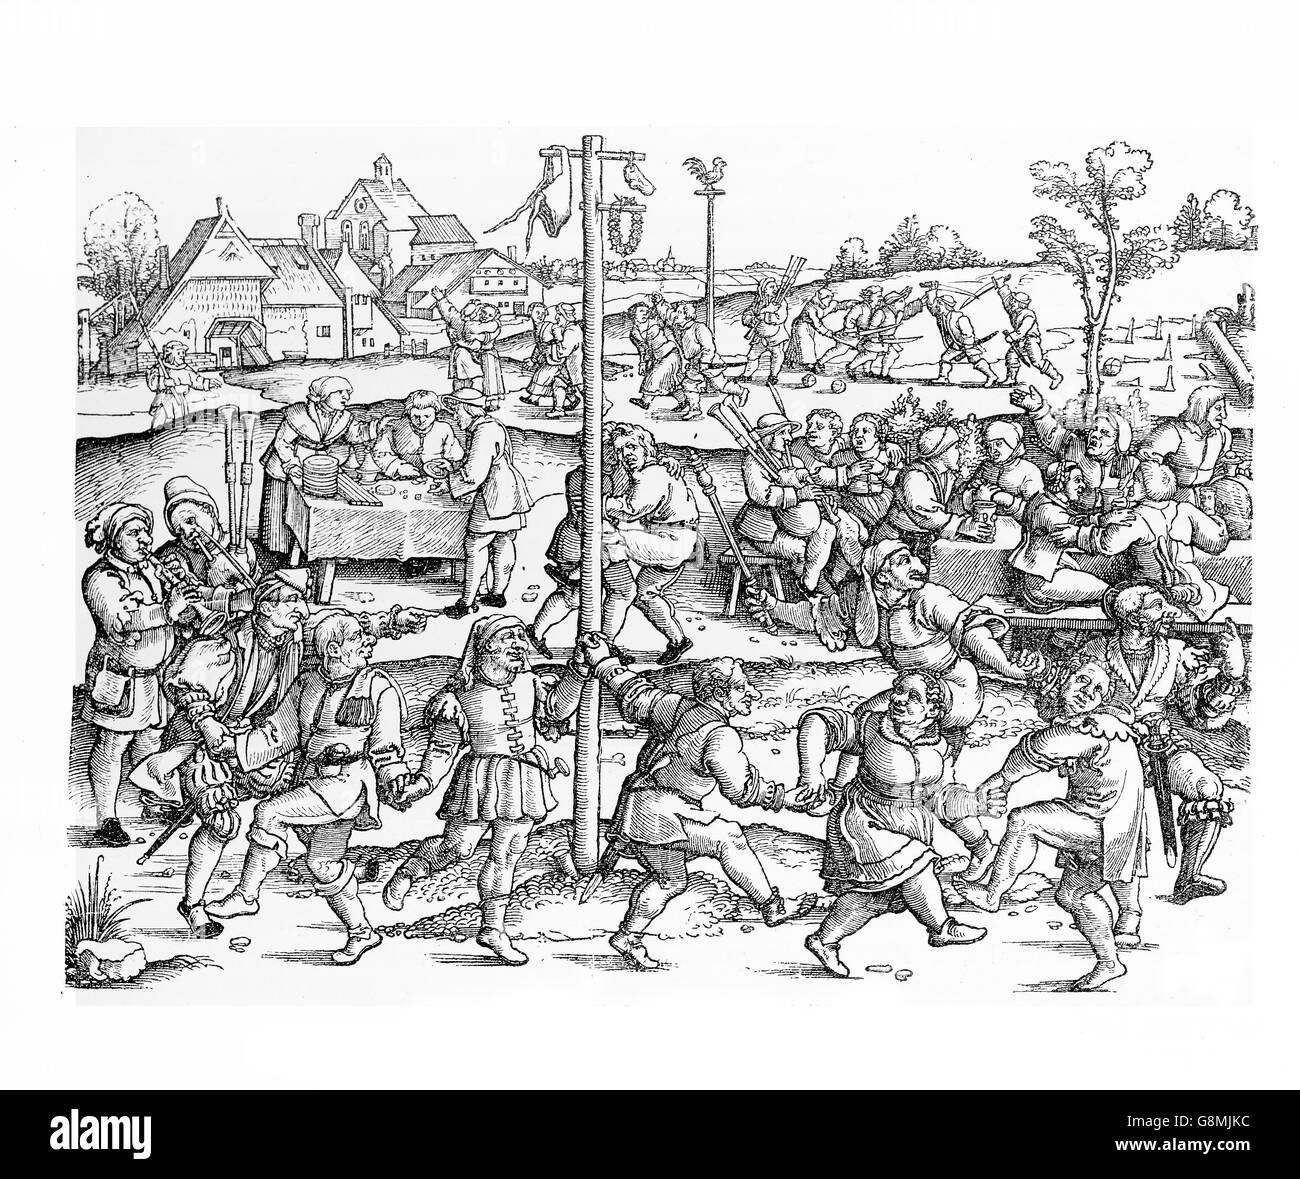 Middle ages peasant celebrate several festivals at harvest time and during the year, related to religion and nature. - Stock Image